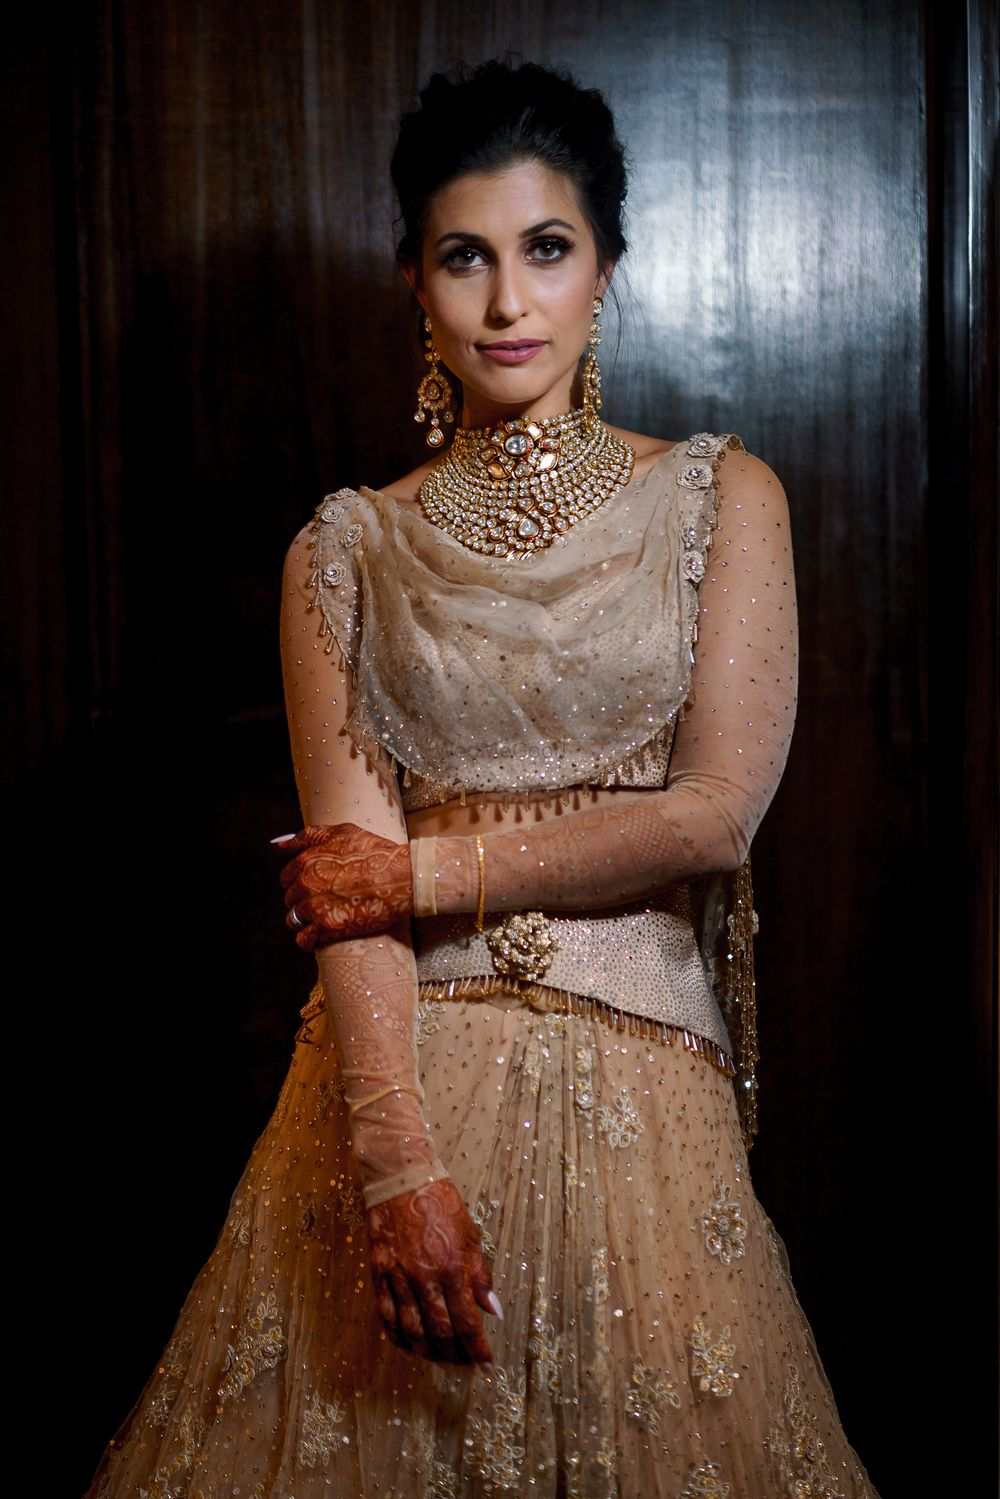 Photo of Indo western beige outfit for bride